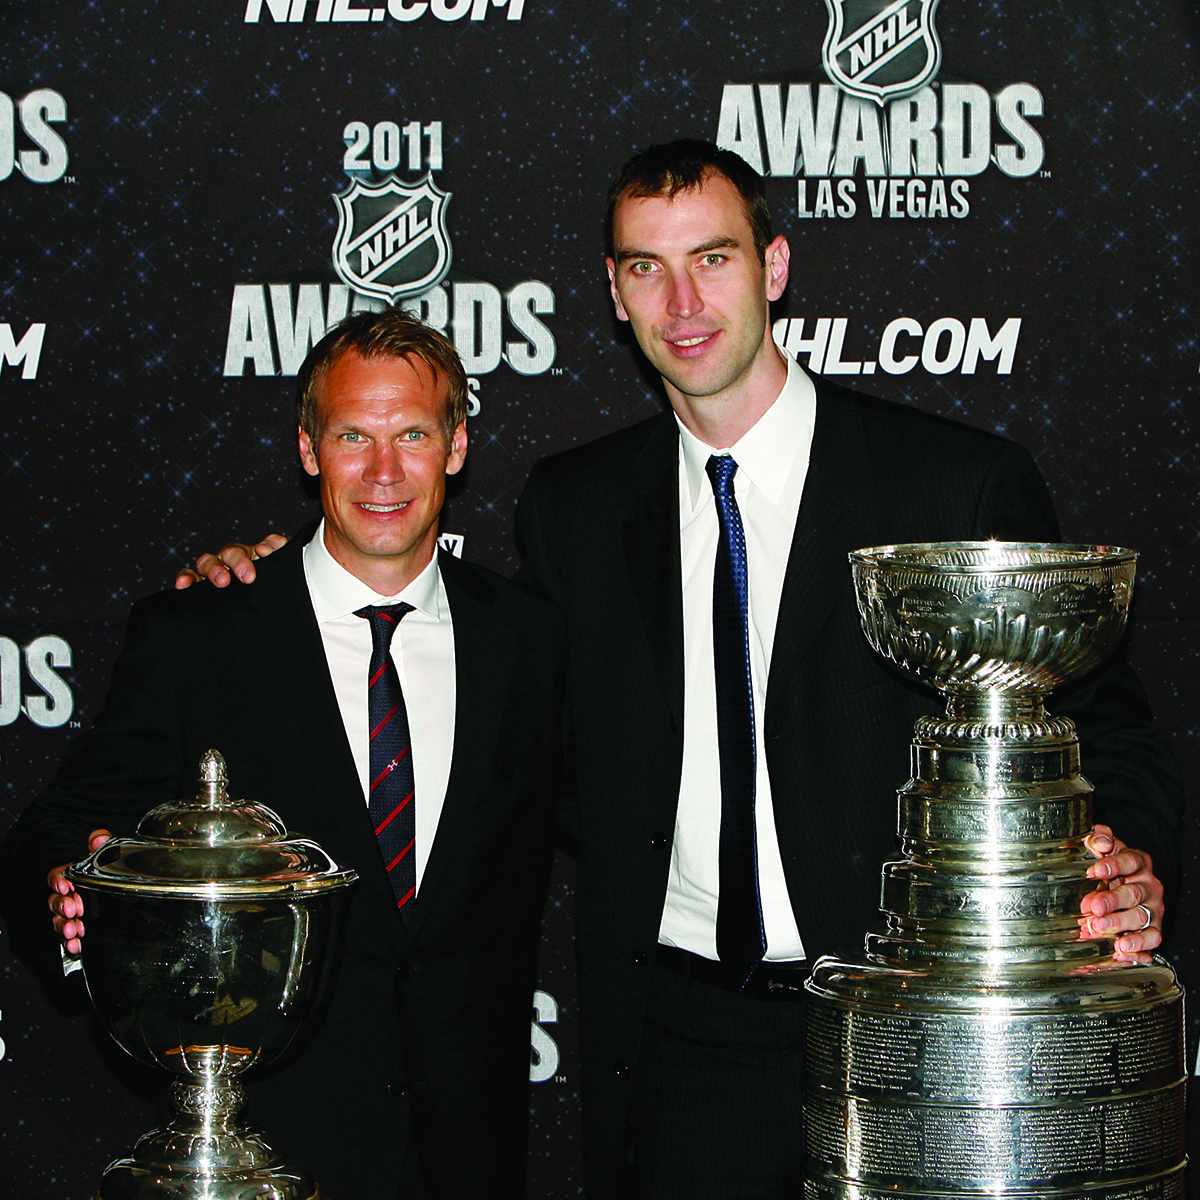 Nicklas Lidström, Detroit Red Wings, Zdeno Chara, Boston Bruins